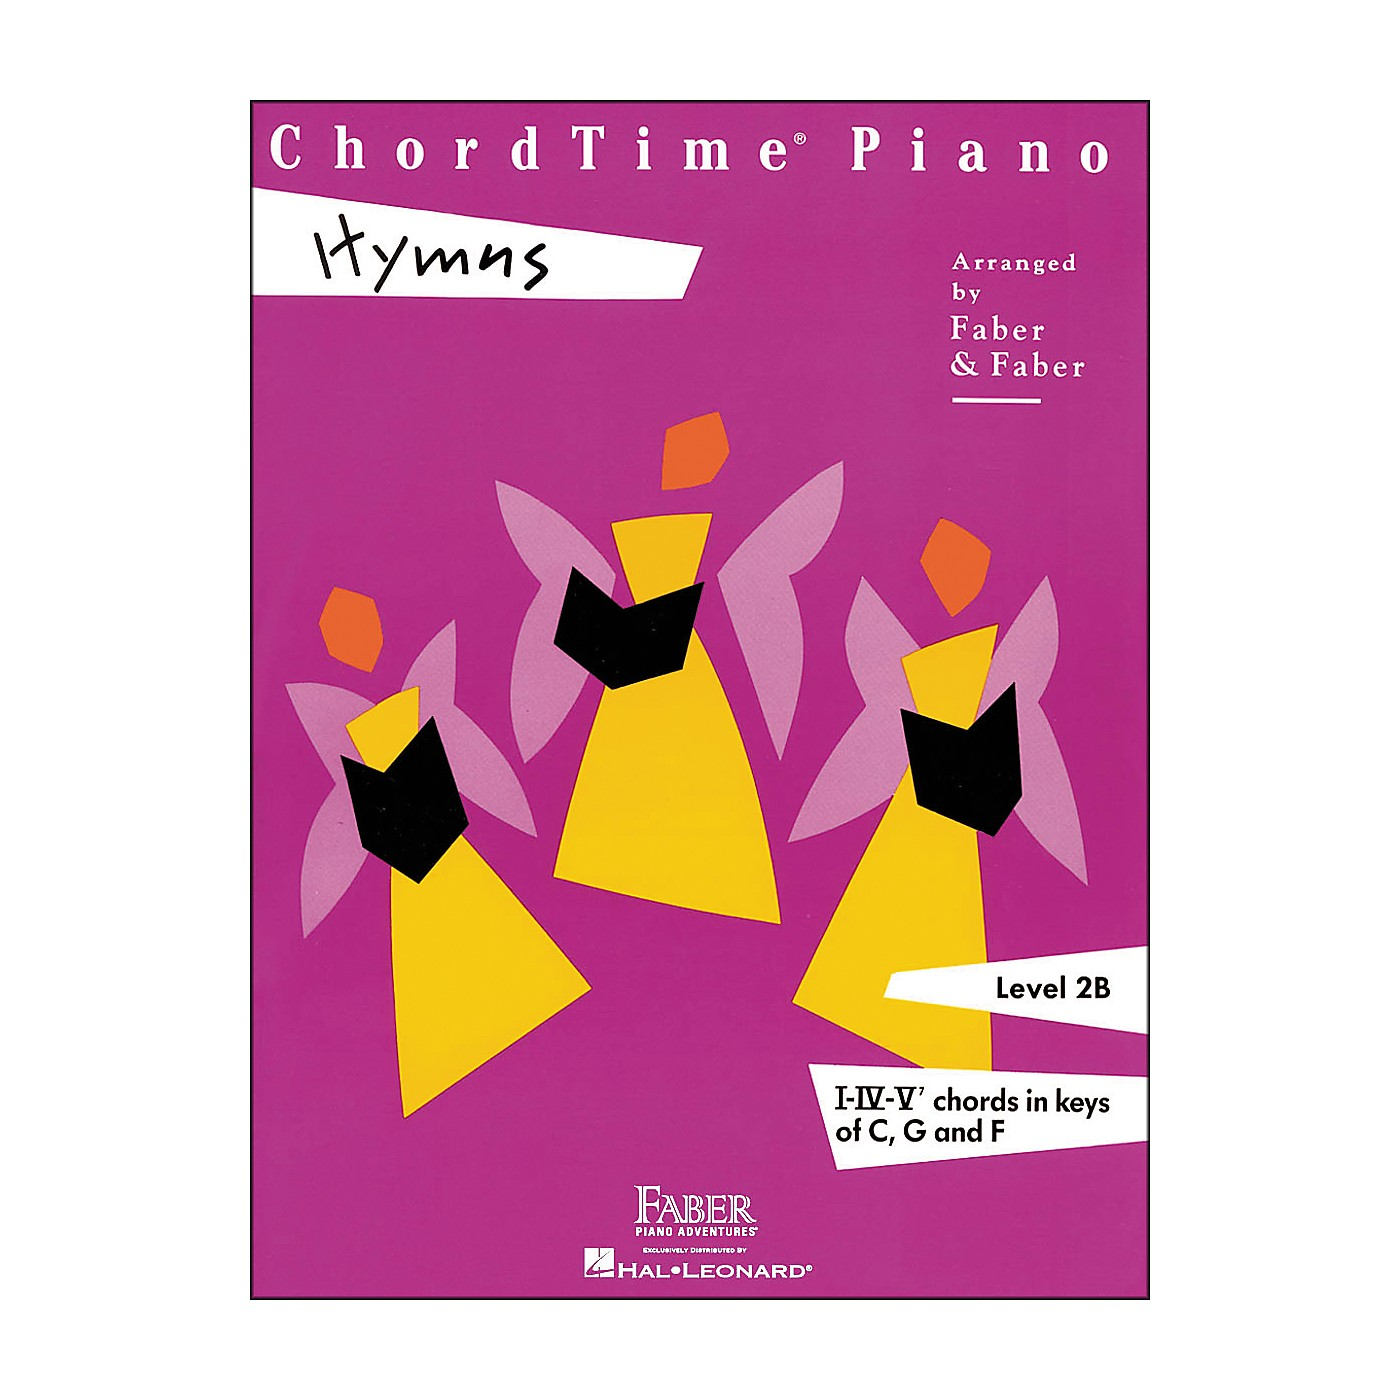 Faber Piano Adventures Chordtime Piano Hymns Book Level 2B Chords In Keys C, G, And F - Faber Piano thumbnail